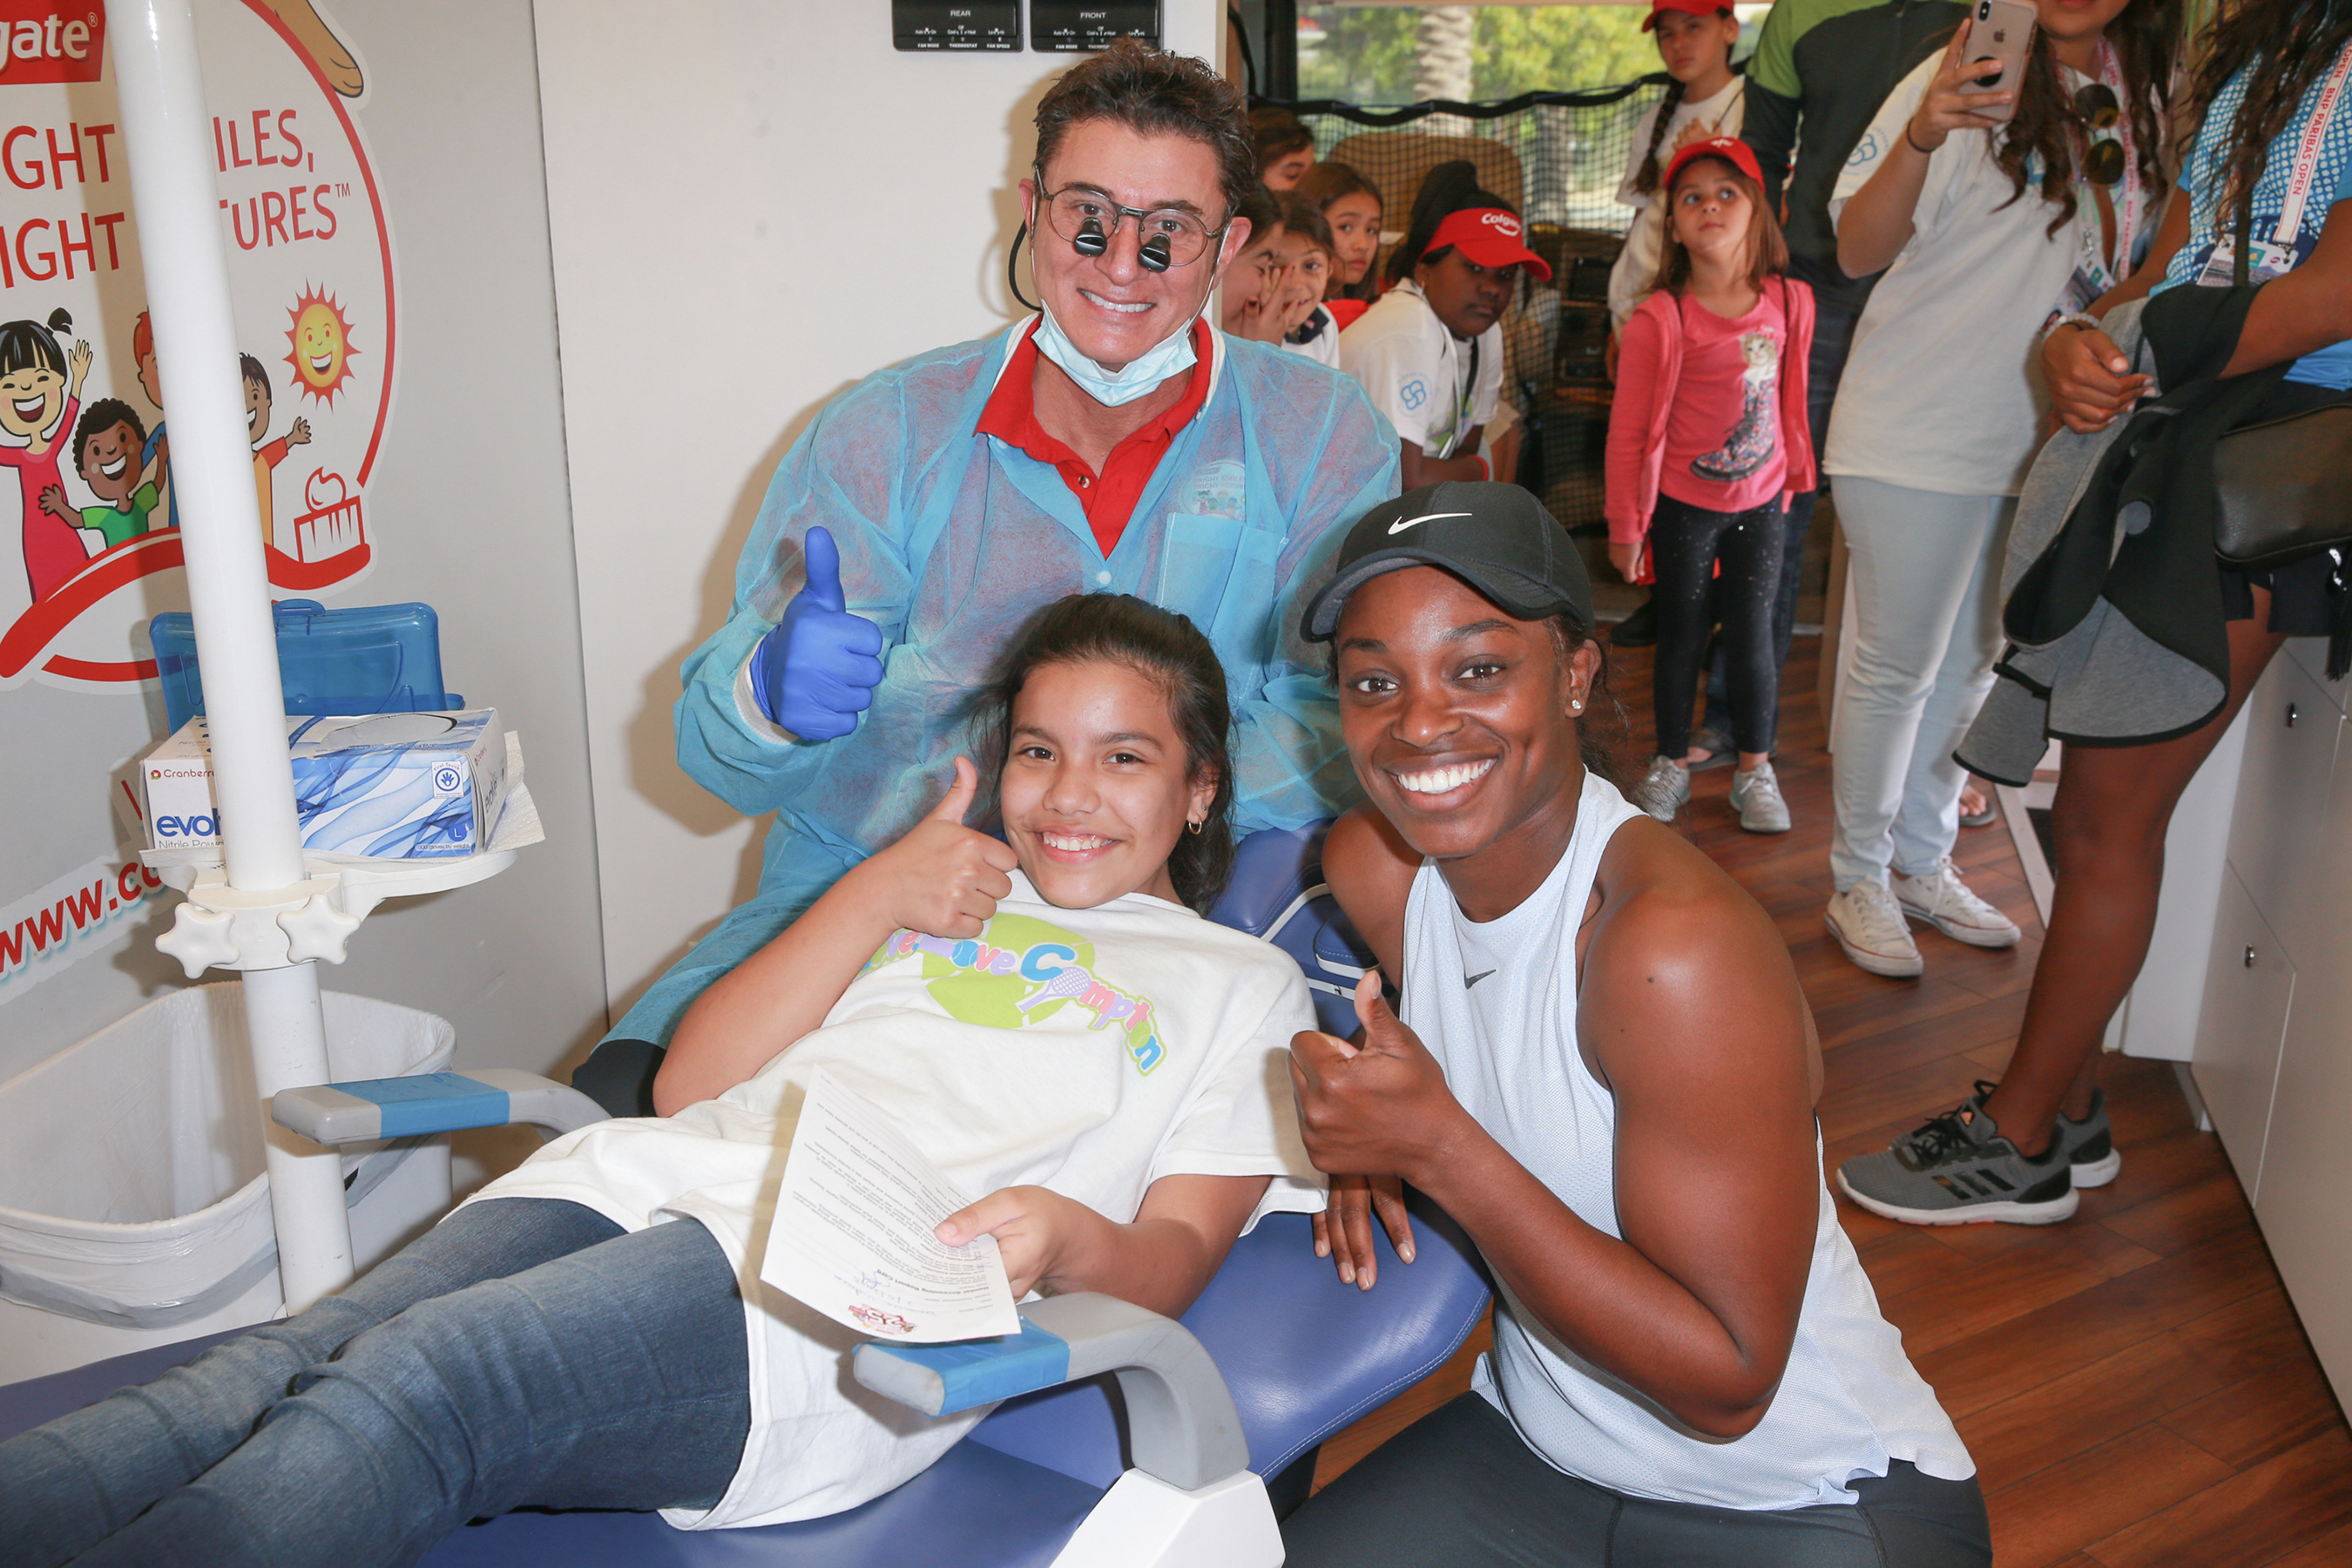 Colgate Bright Smiles, Bright Futures® and Sloane Stephens encourage healthy habits